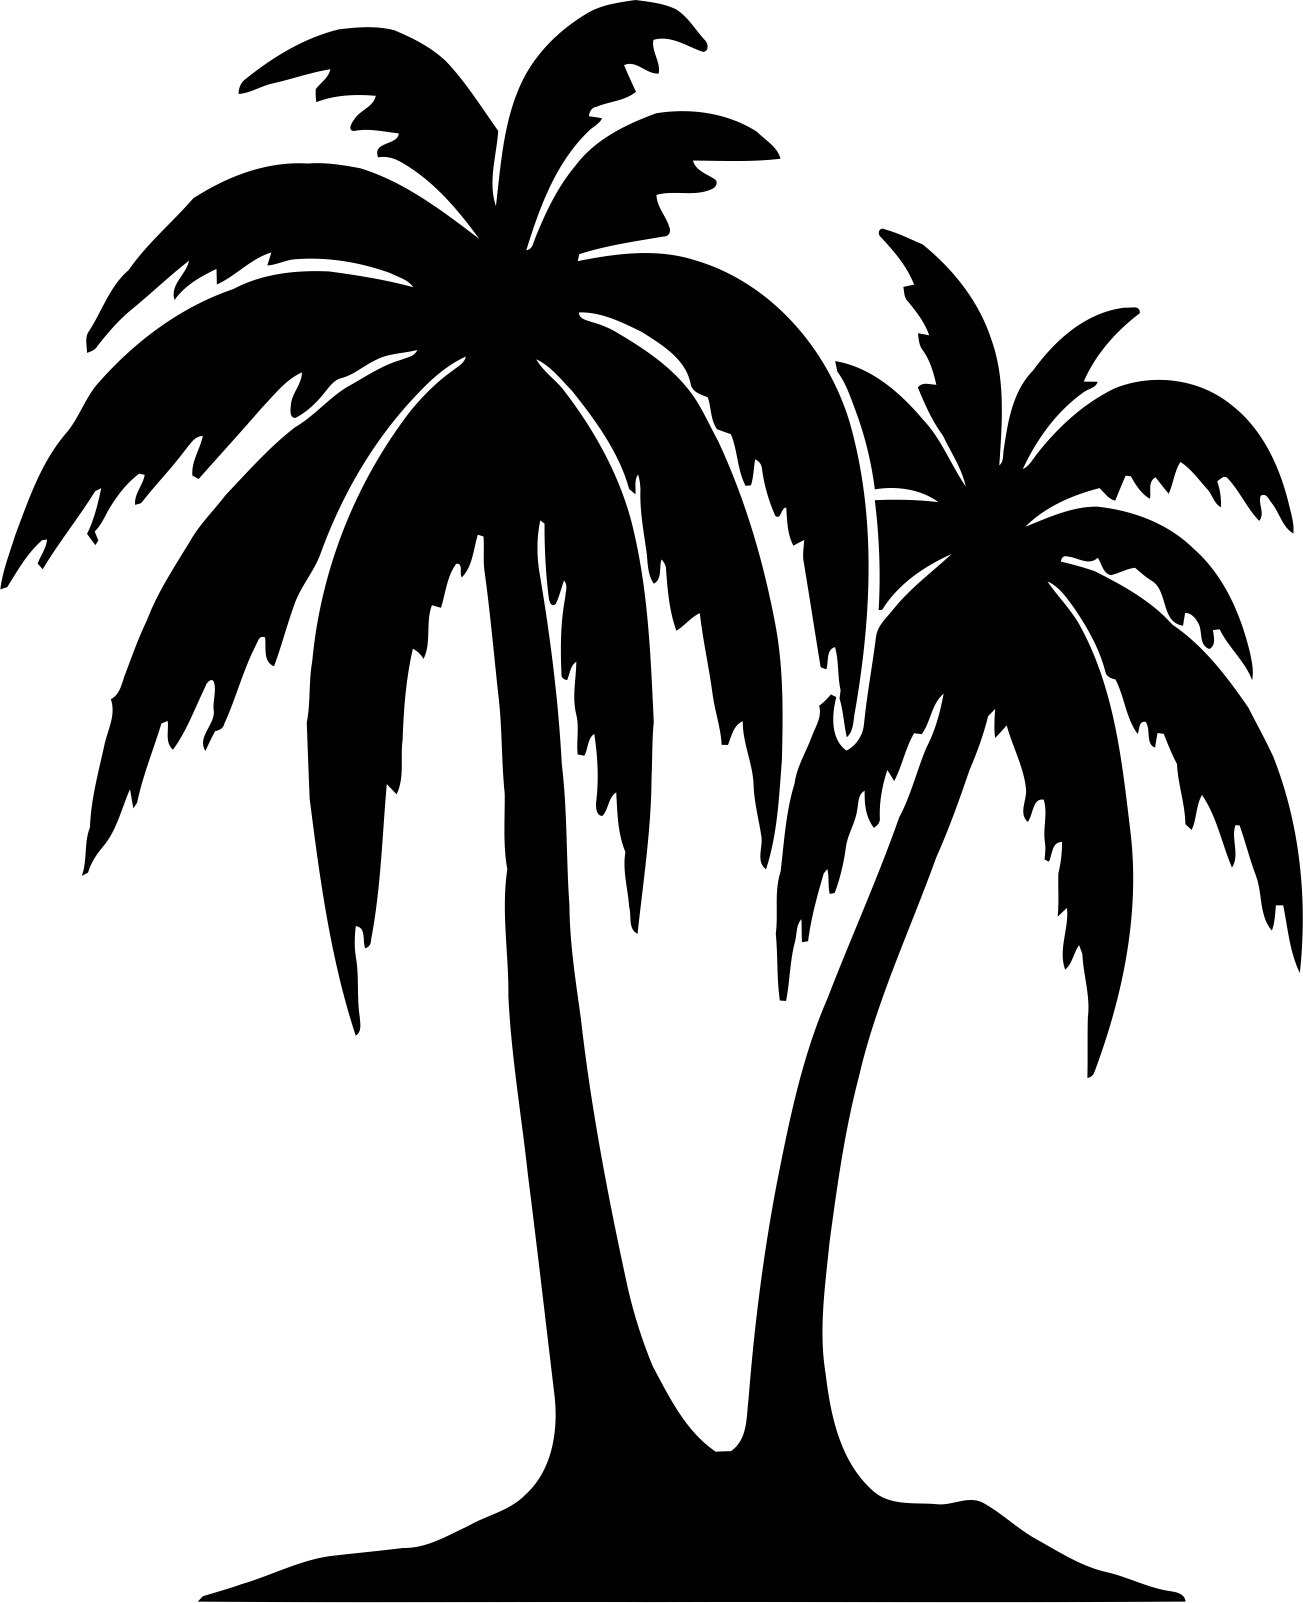 Tree Vinyl Decals Vector CDR File